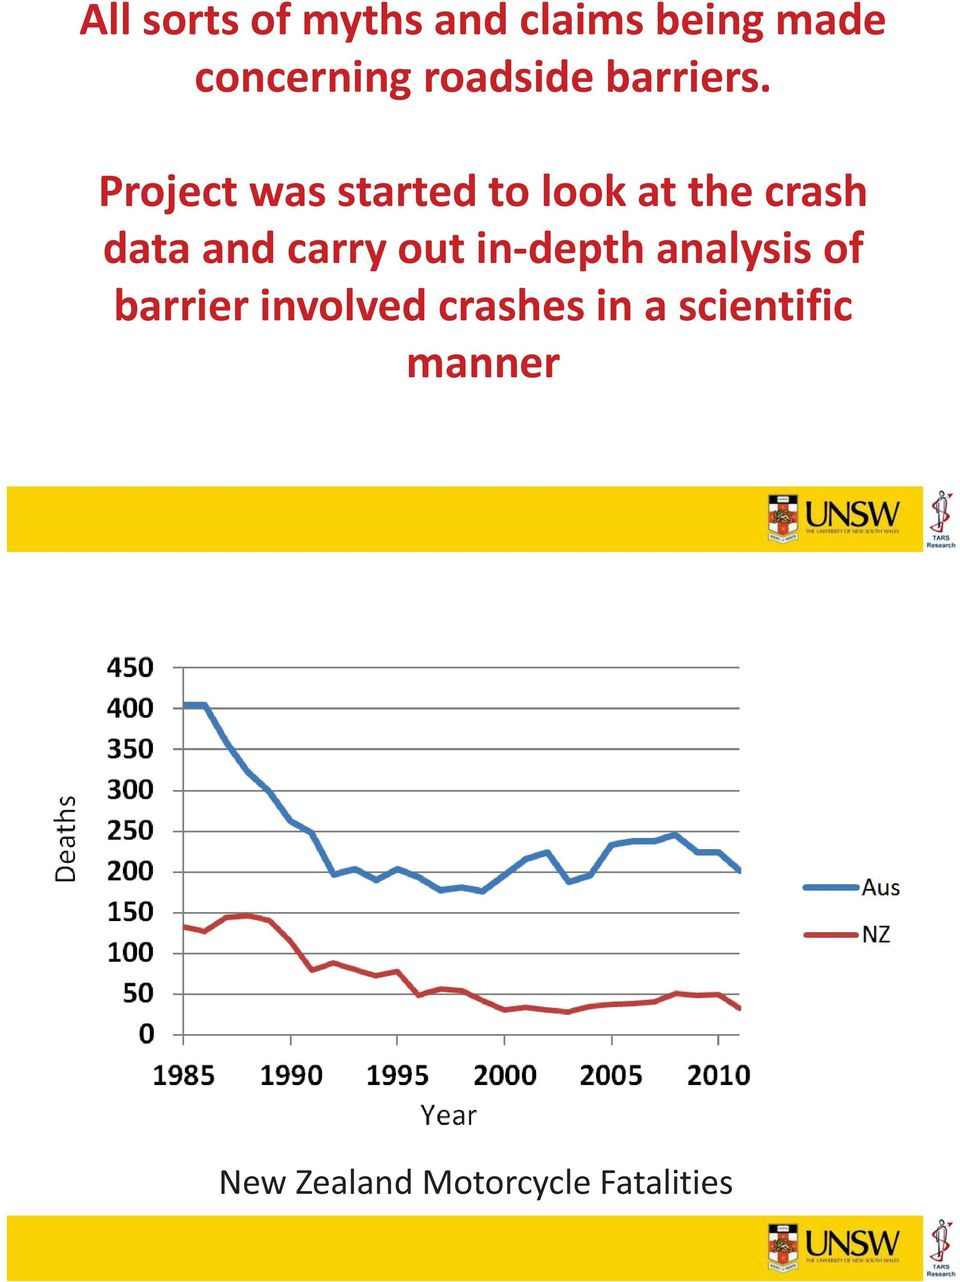 Project was started to look at the crash data and carry